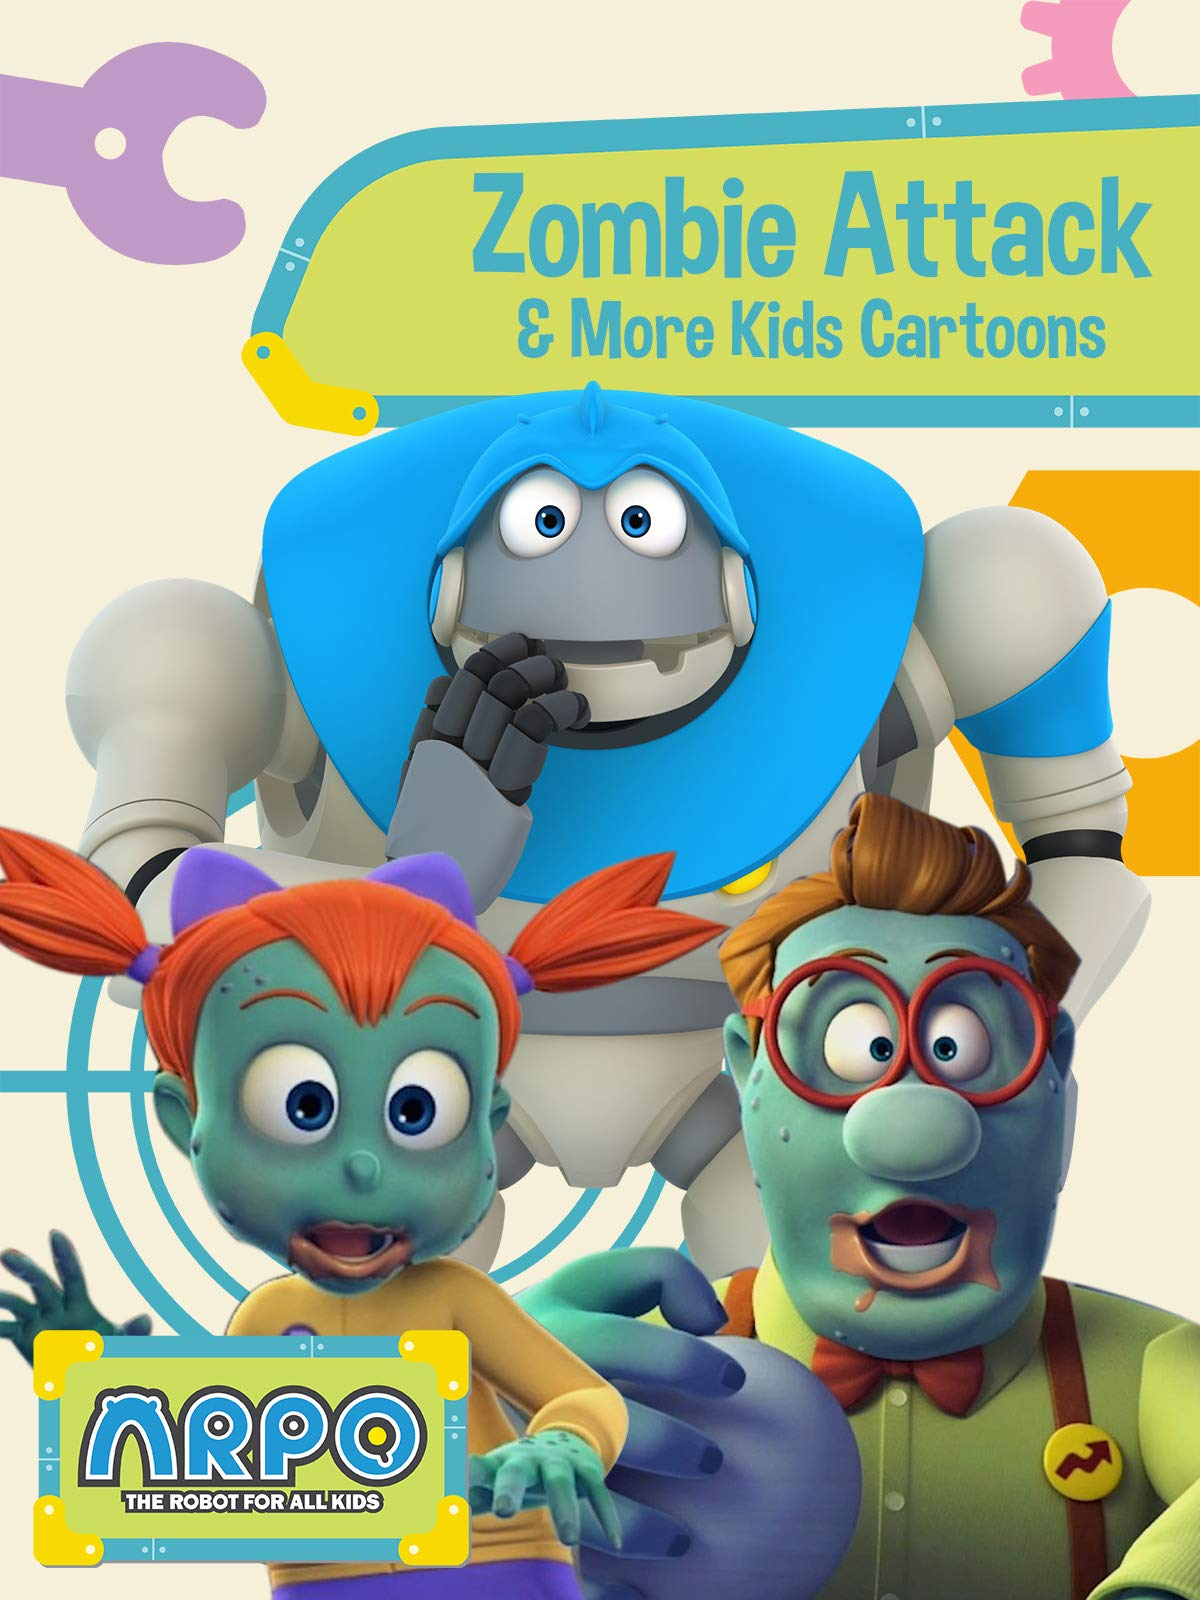 Arpo the Robot for All Kids - Zombie Attack & More Kids Cartoons